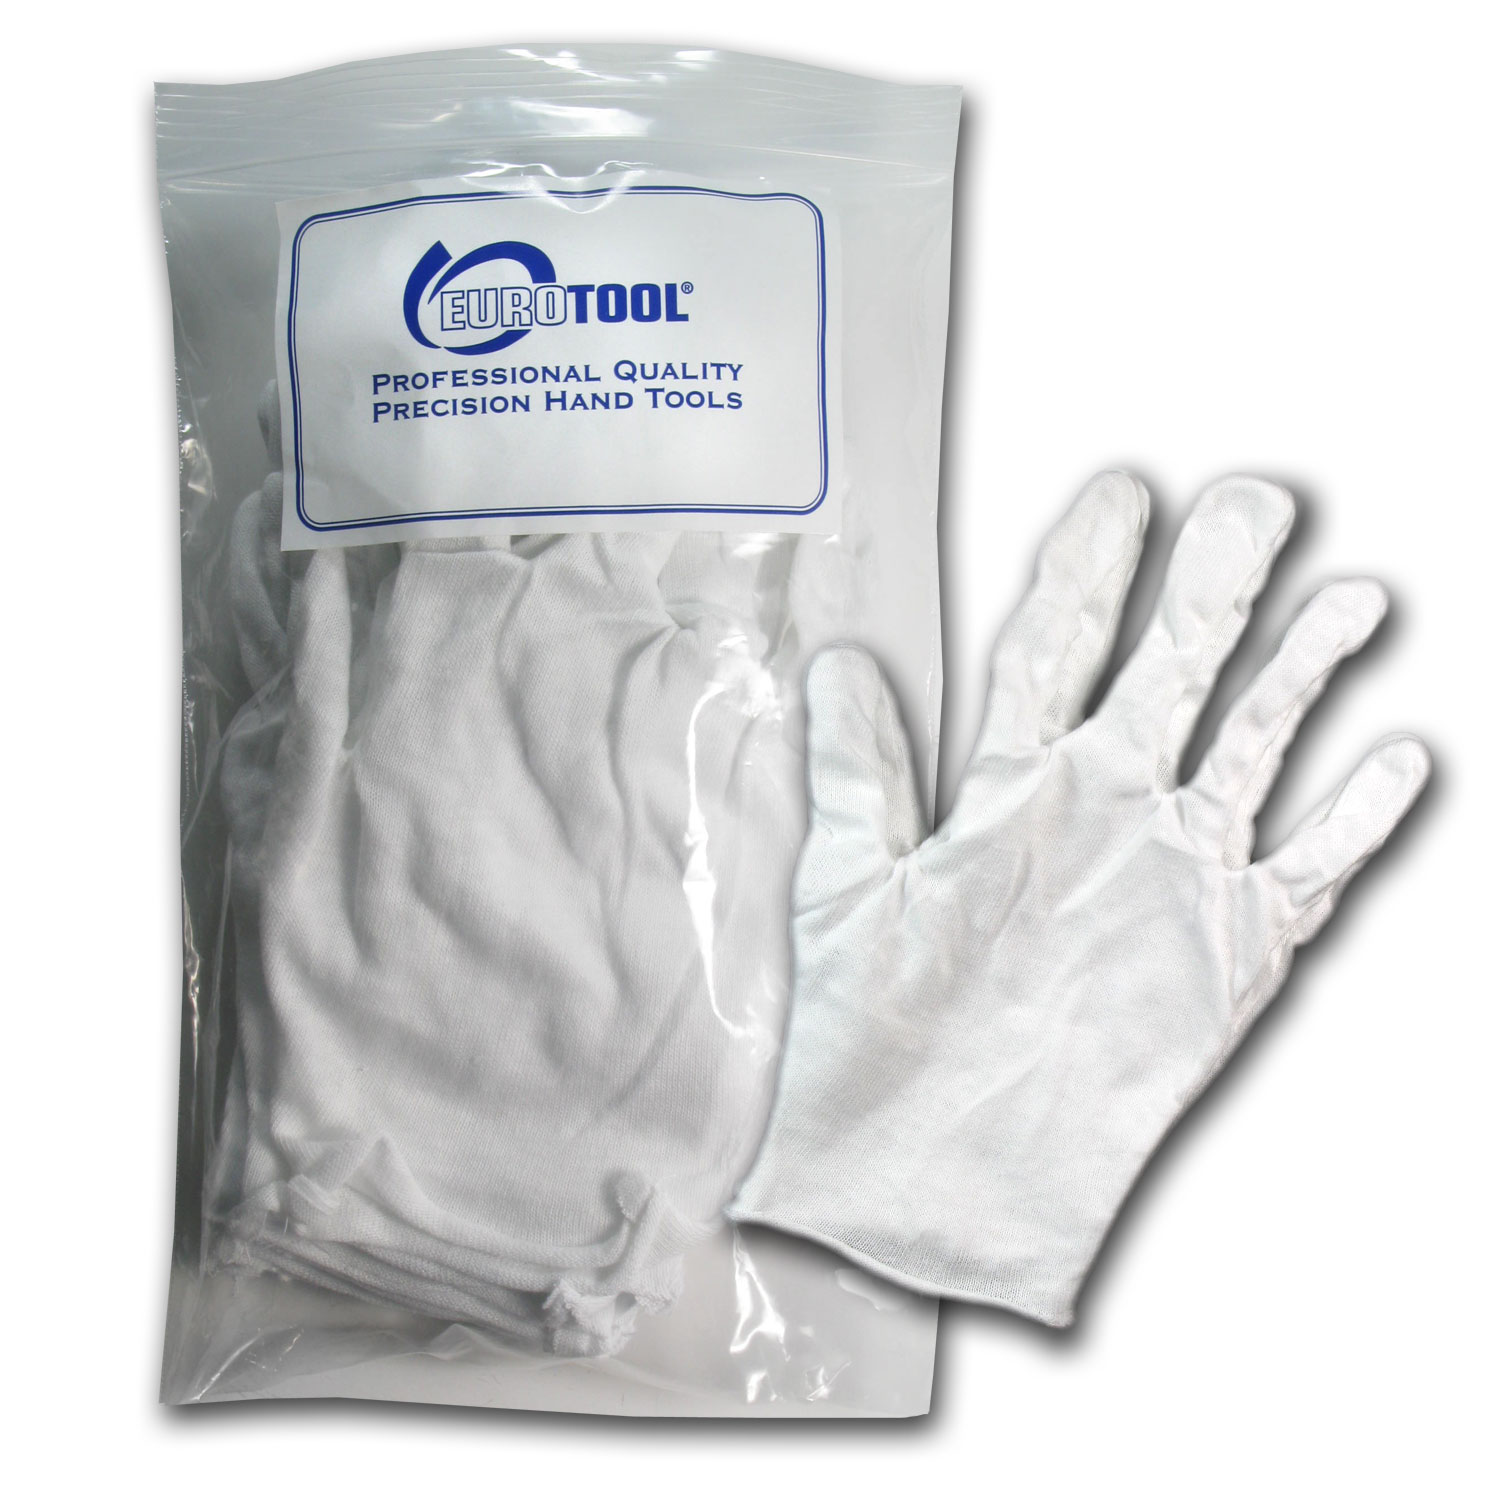 Cotton Glove - Large - 12 pack (6 Pair)